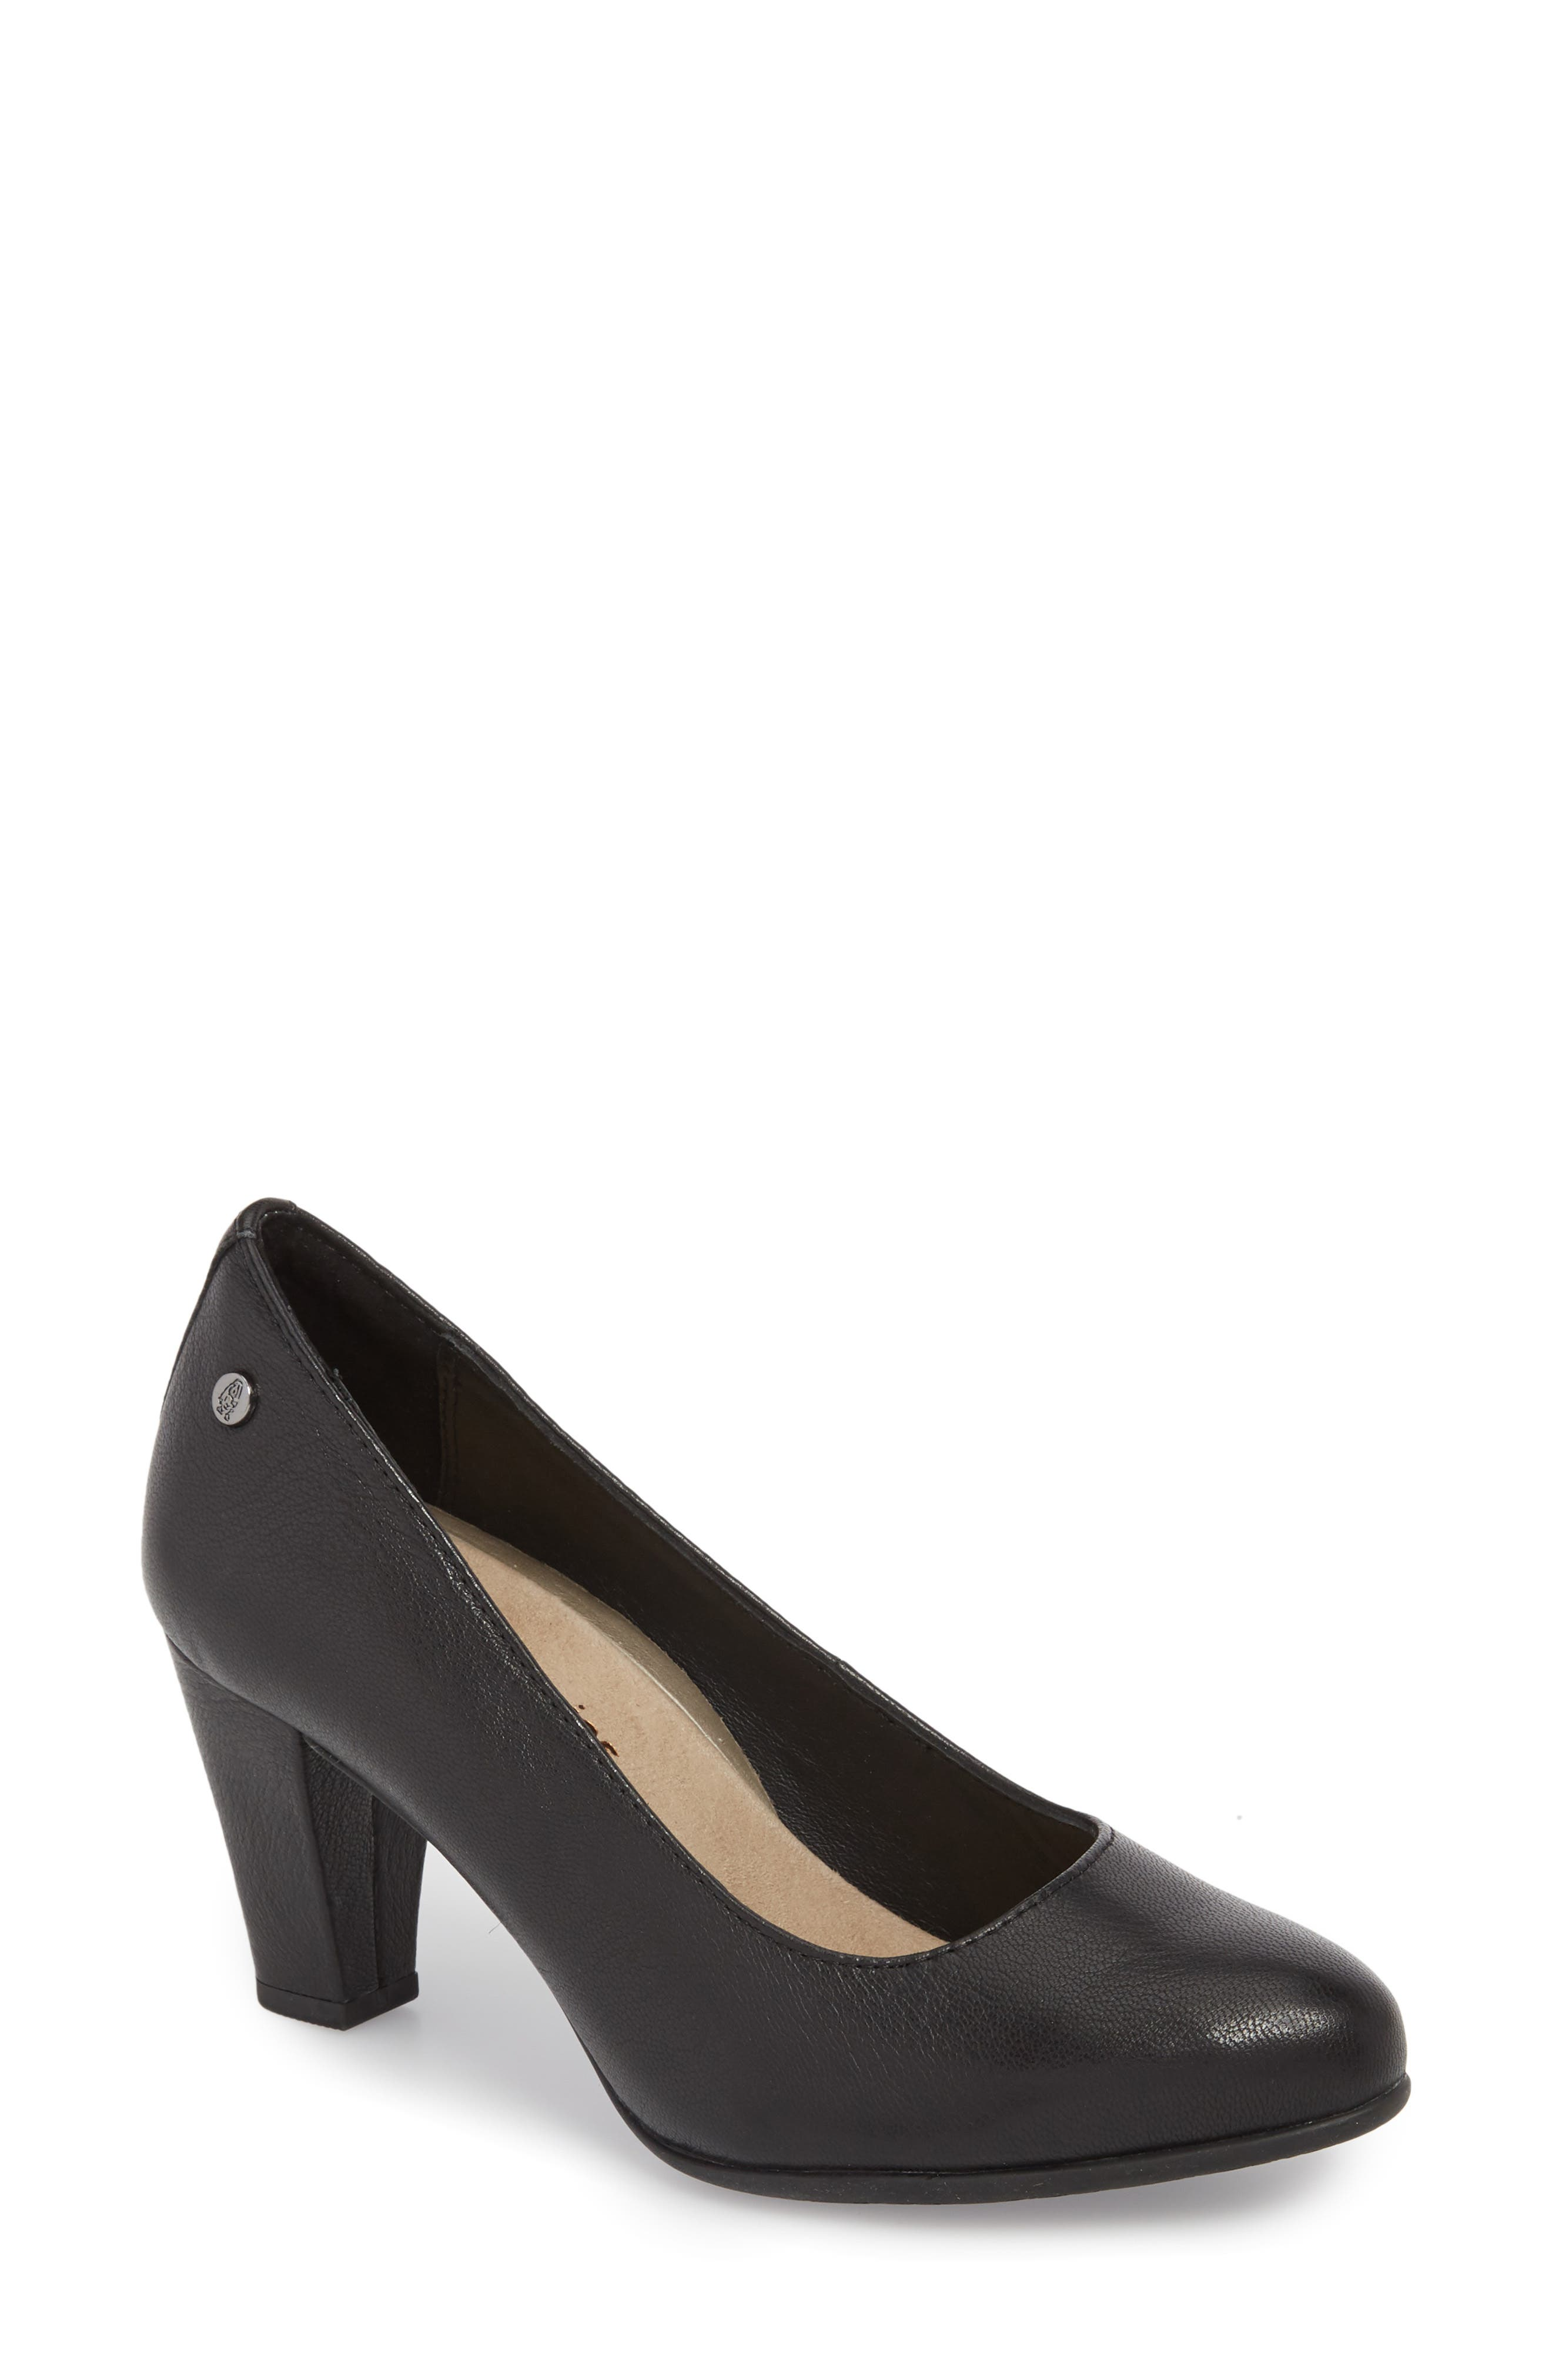 Minam Meaghan Pump,                             Main thumbnail 1, color,                             Black Leather